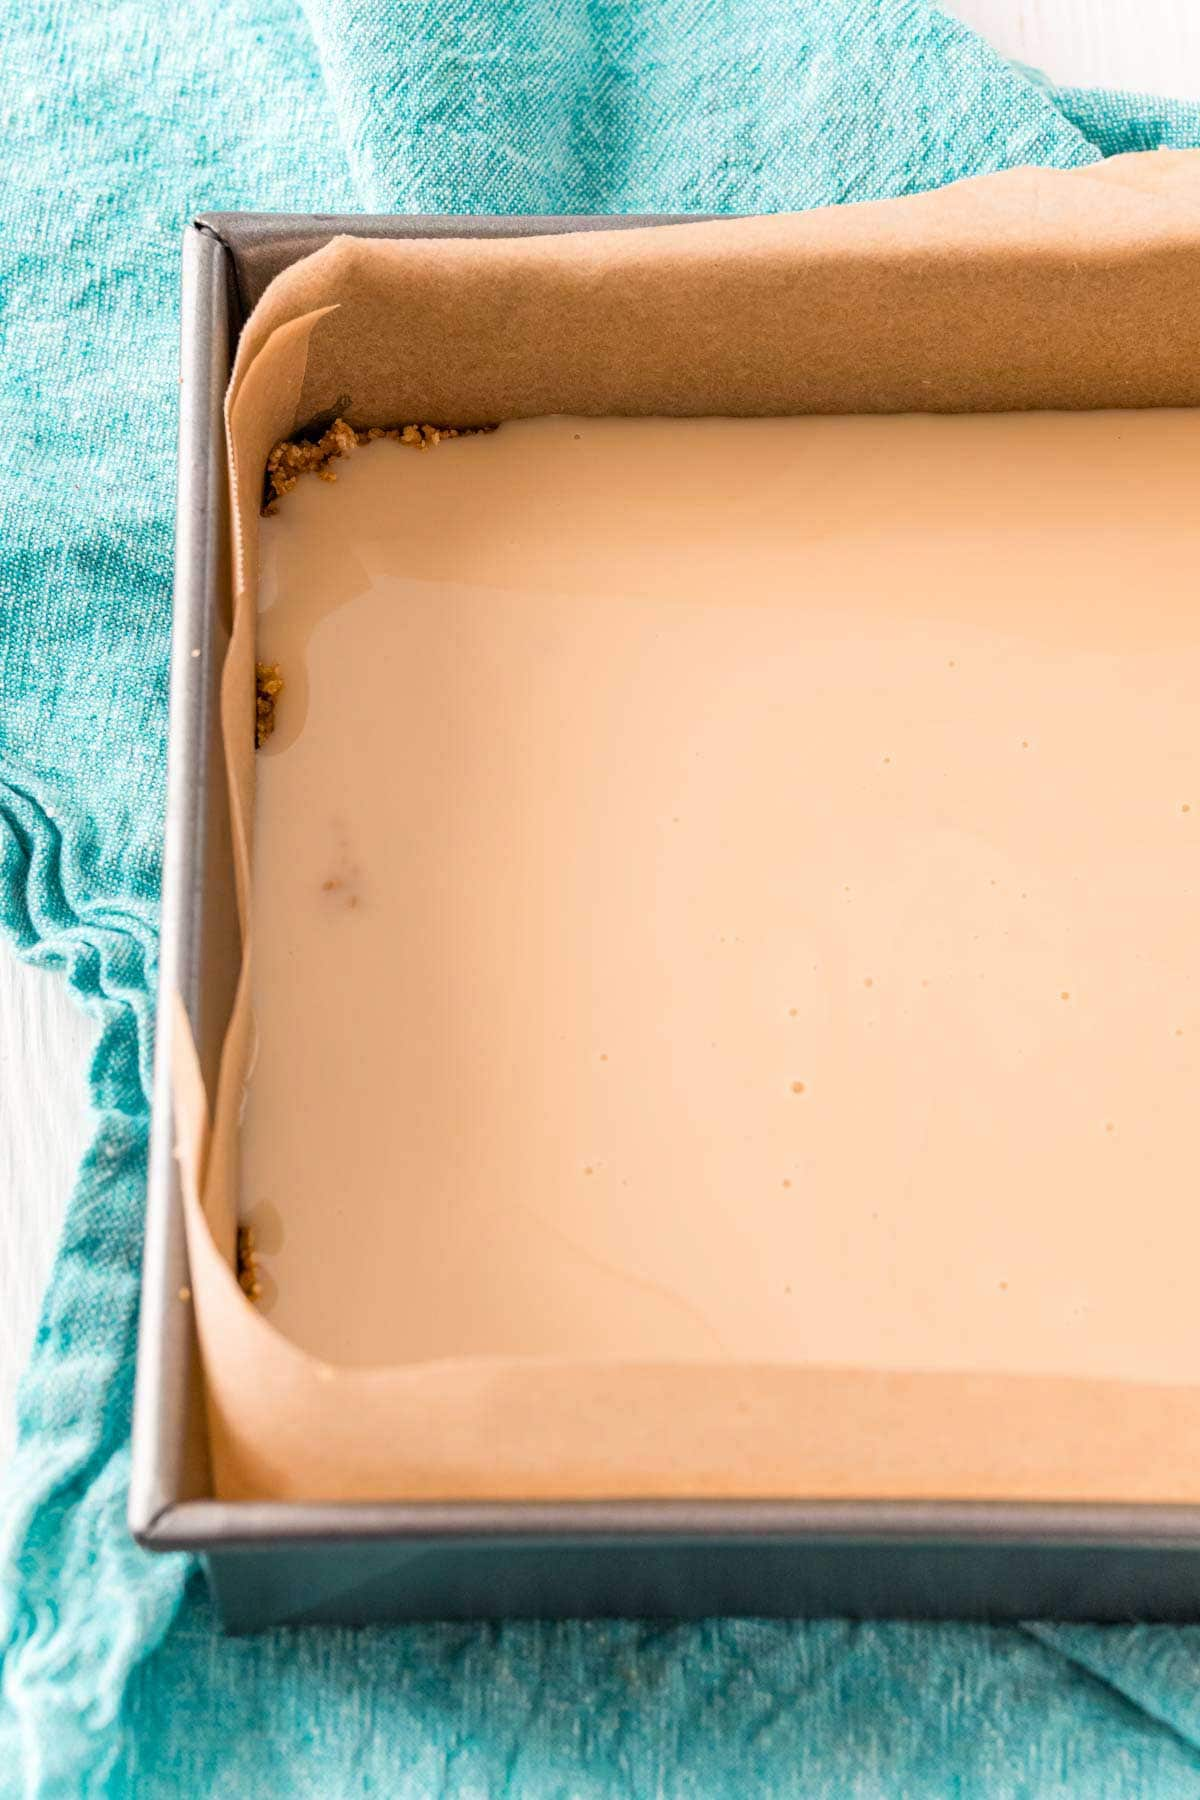 Sweetened condensed milk in a baking dish